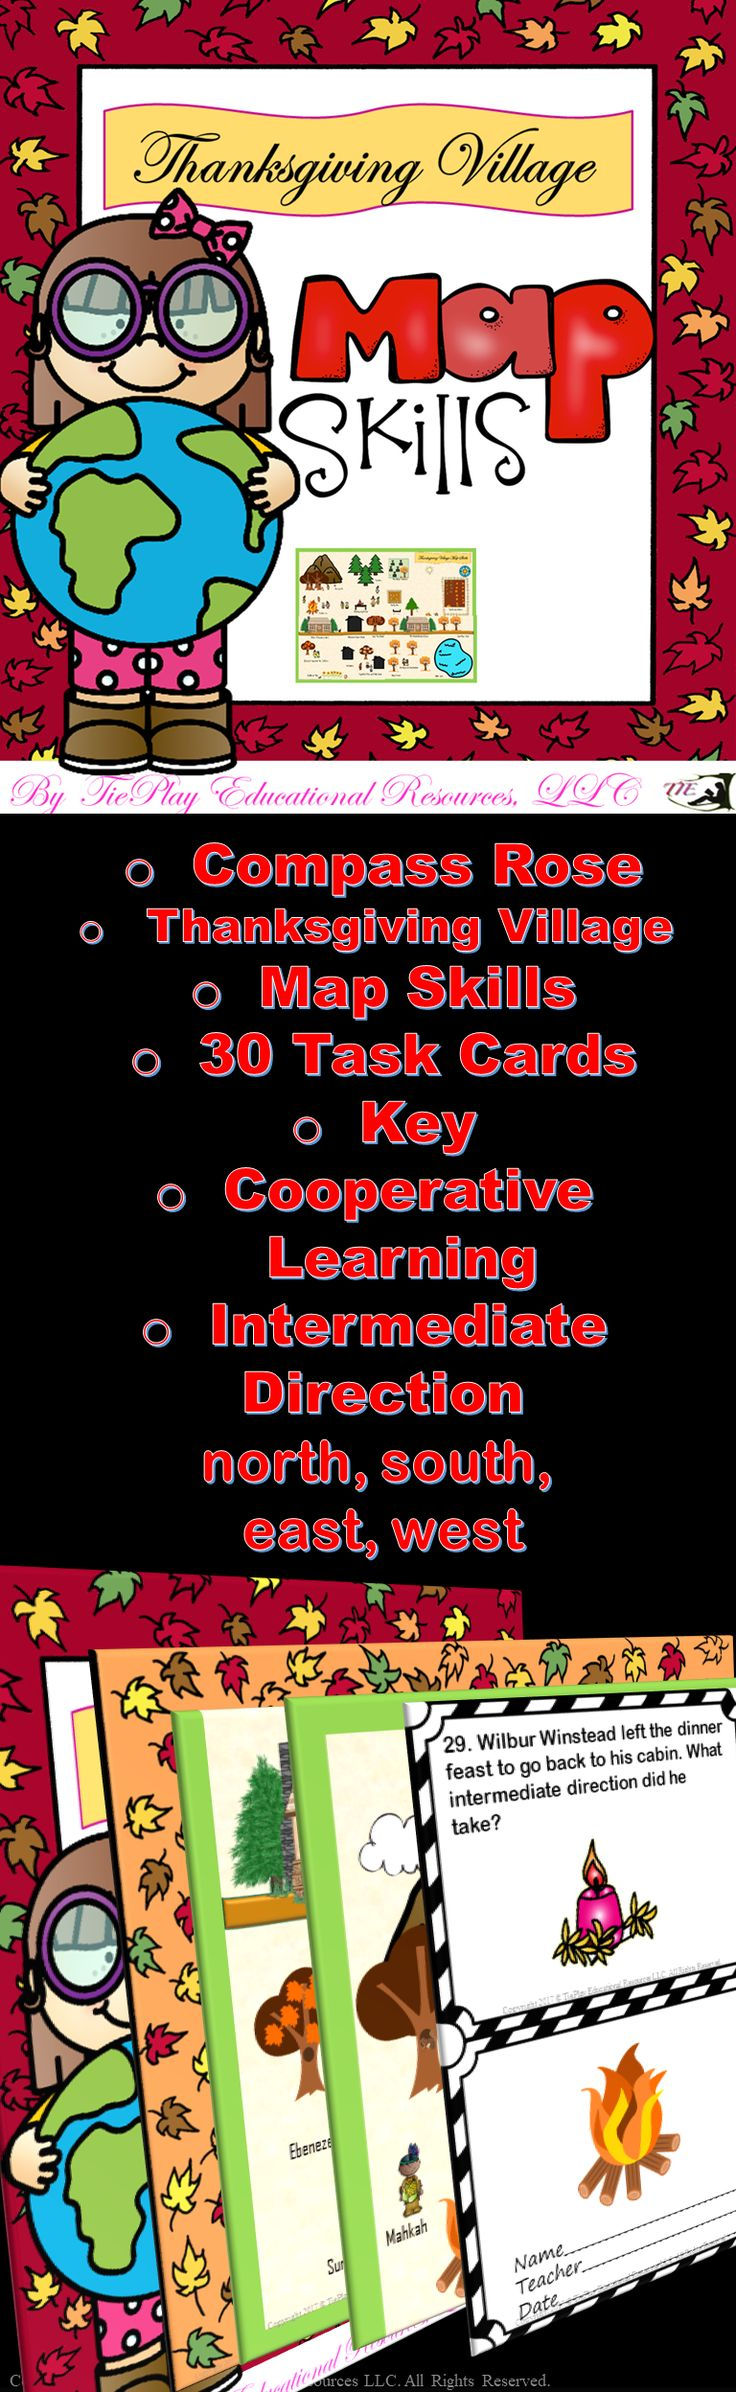 Price 5.00 Come hither! Thanksgiving Village Map Skills is a kid friendly way to learn or review directions of north, south, east, west, and intermediate. This map skills game contains:  game board of a lovely Thanksgiving Village scene compass rose/scale directions for use 30 task cards 2 awards cards and key